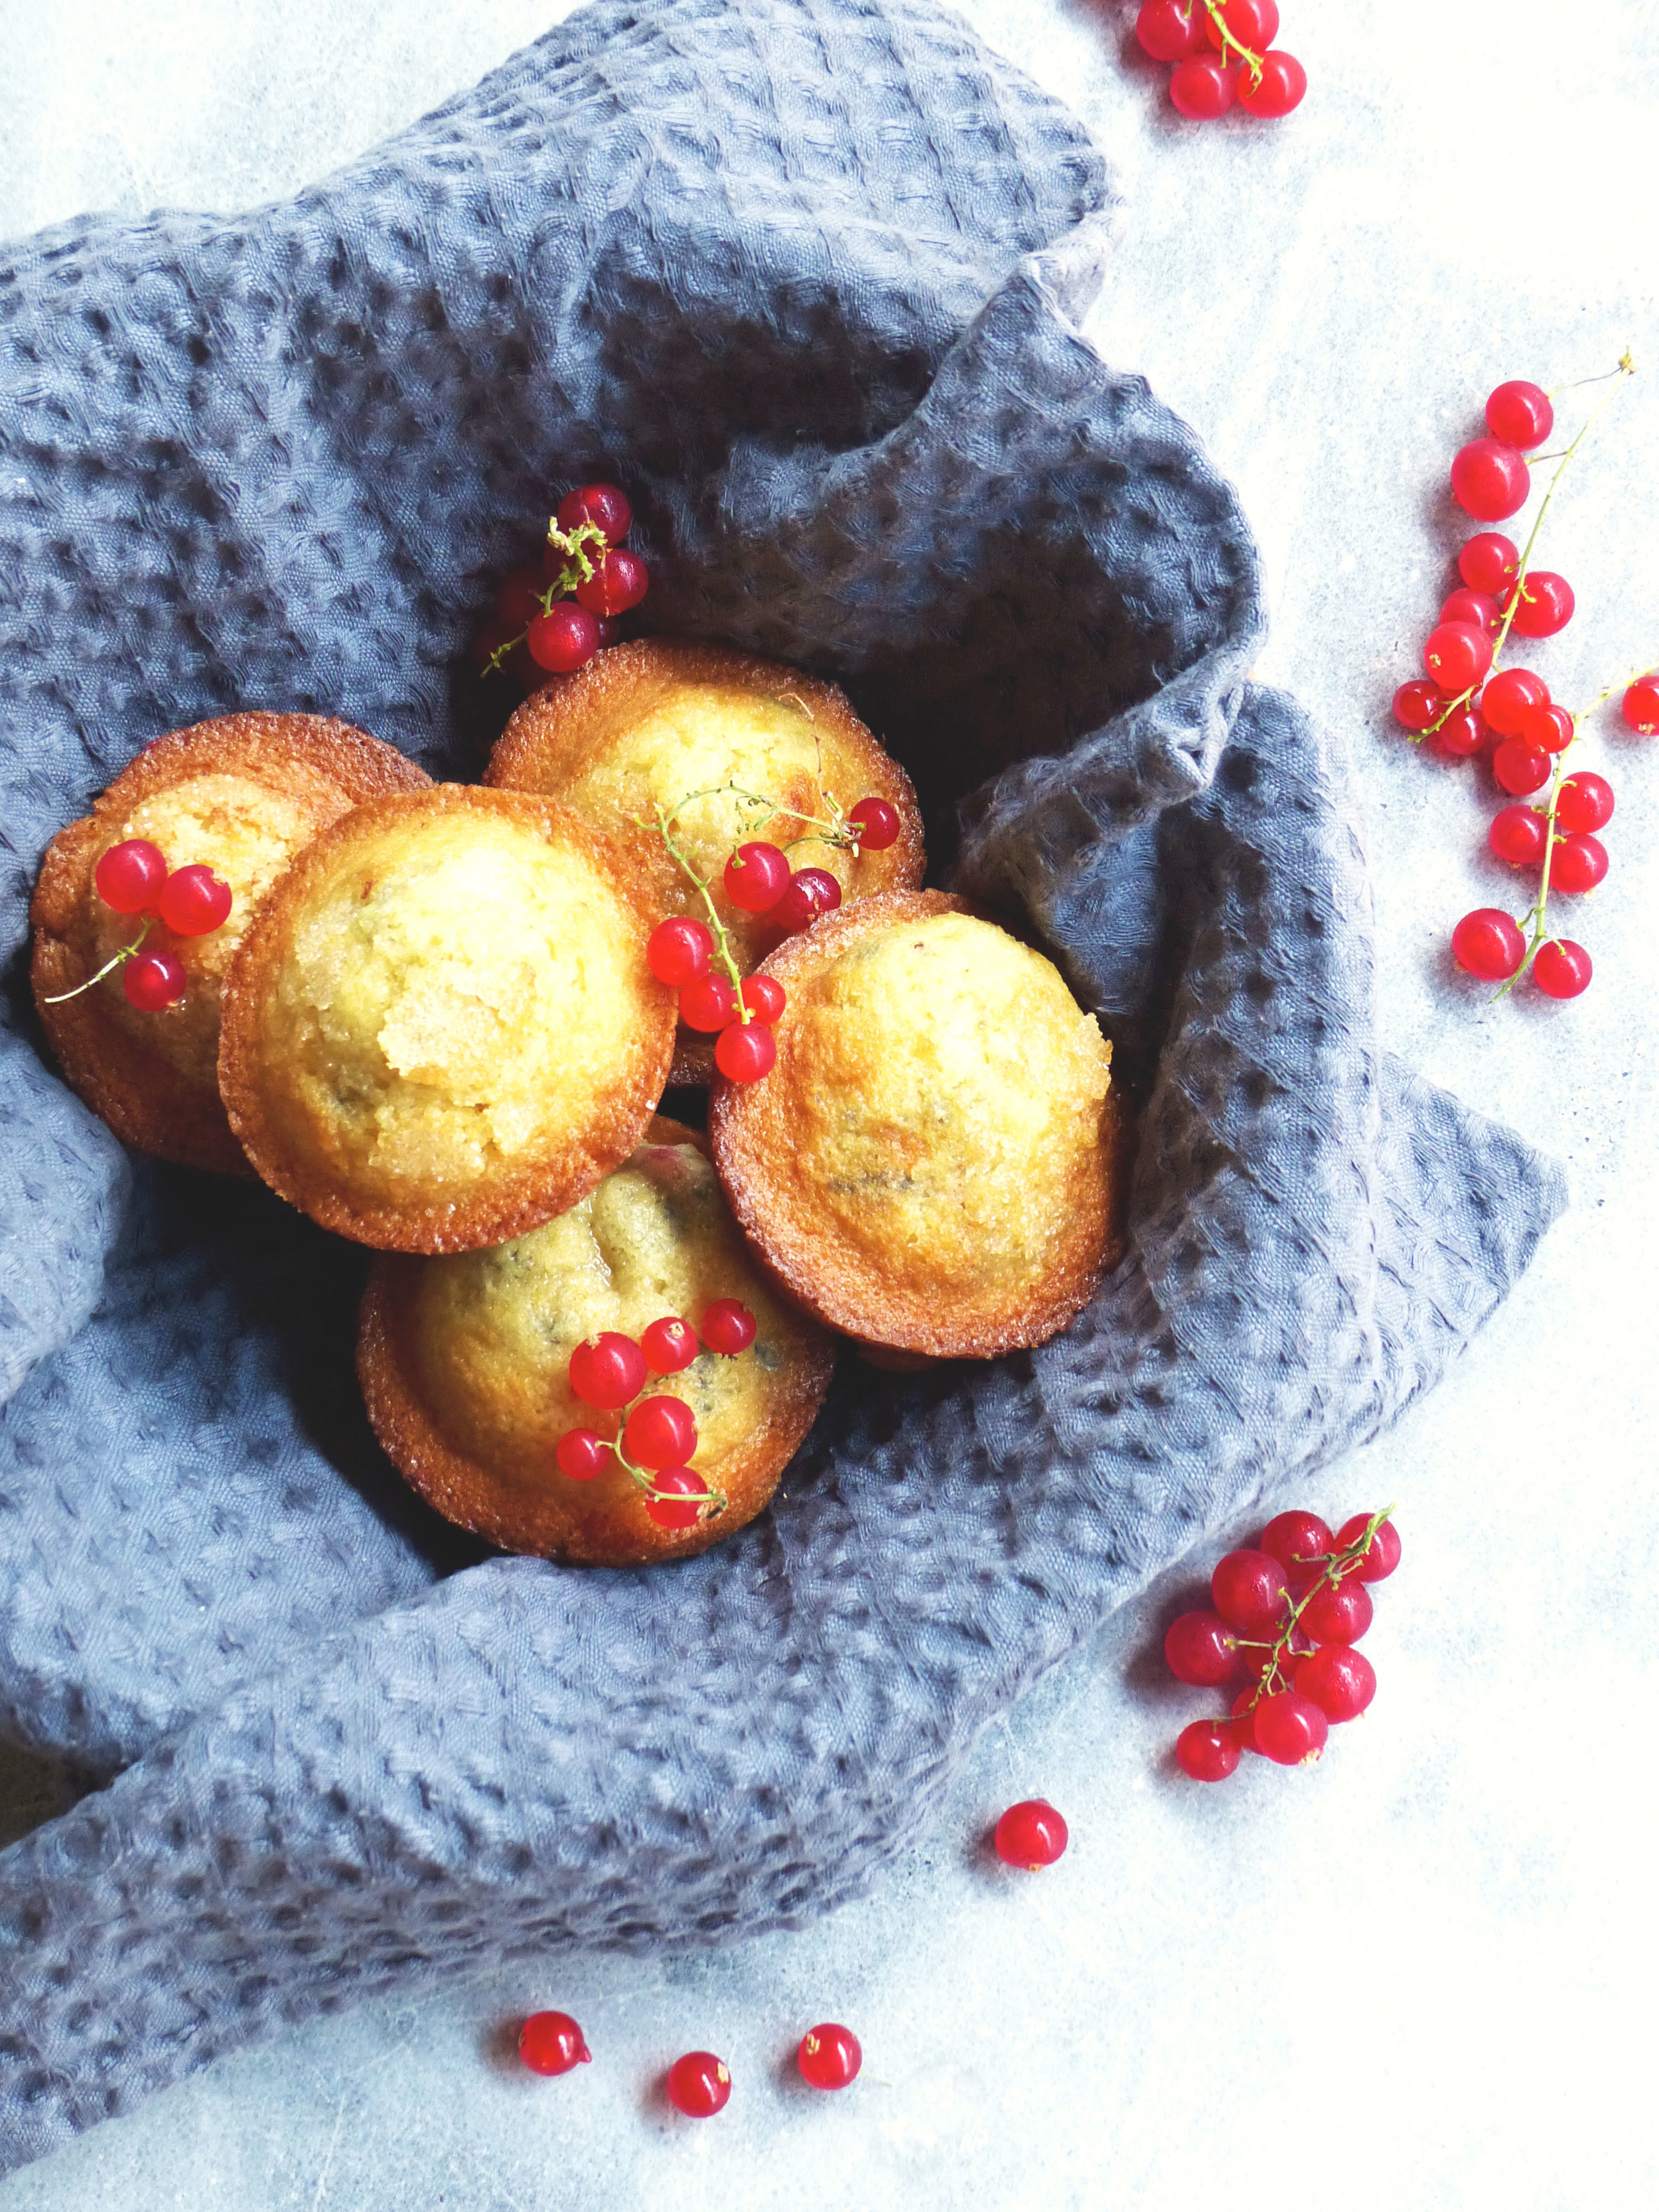 red currant muffins   Servings: 6 - 8 muffins    Preparation Time: 10 minutes    Cooking Time: 20 minutes    Ingredients:    2 cups All purposed flour  1/2 cup milk  4 tbsp butter at room temperature or melted  1 cup granulated sugar + 1 tbsp sugar for topping each muffin   1/2 tsp salt  1 tsp vanilla extract  2 tsp baking powder  2 eggs  1 handful red currant berries  1 lemon zest    Instructions:      1)   Preheat an oven at 200ºC.      2) Use a mixer to mix sugar, butter, and eggs in a large mixing bowl.    3) Add flour, baking powder, salt, milk, and vanilla extract, fold evenly.    4) Add berries and lemon zest.  Fold.      5)   Fill each greased muffin tin with batter.       ) Sprinkle some sugar on top of each muffin before going to the oven.     7) Bake for 15-20 minutes until the muffins turn golden.      8) Let the muffins cool for 2-3 minutes before serving.